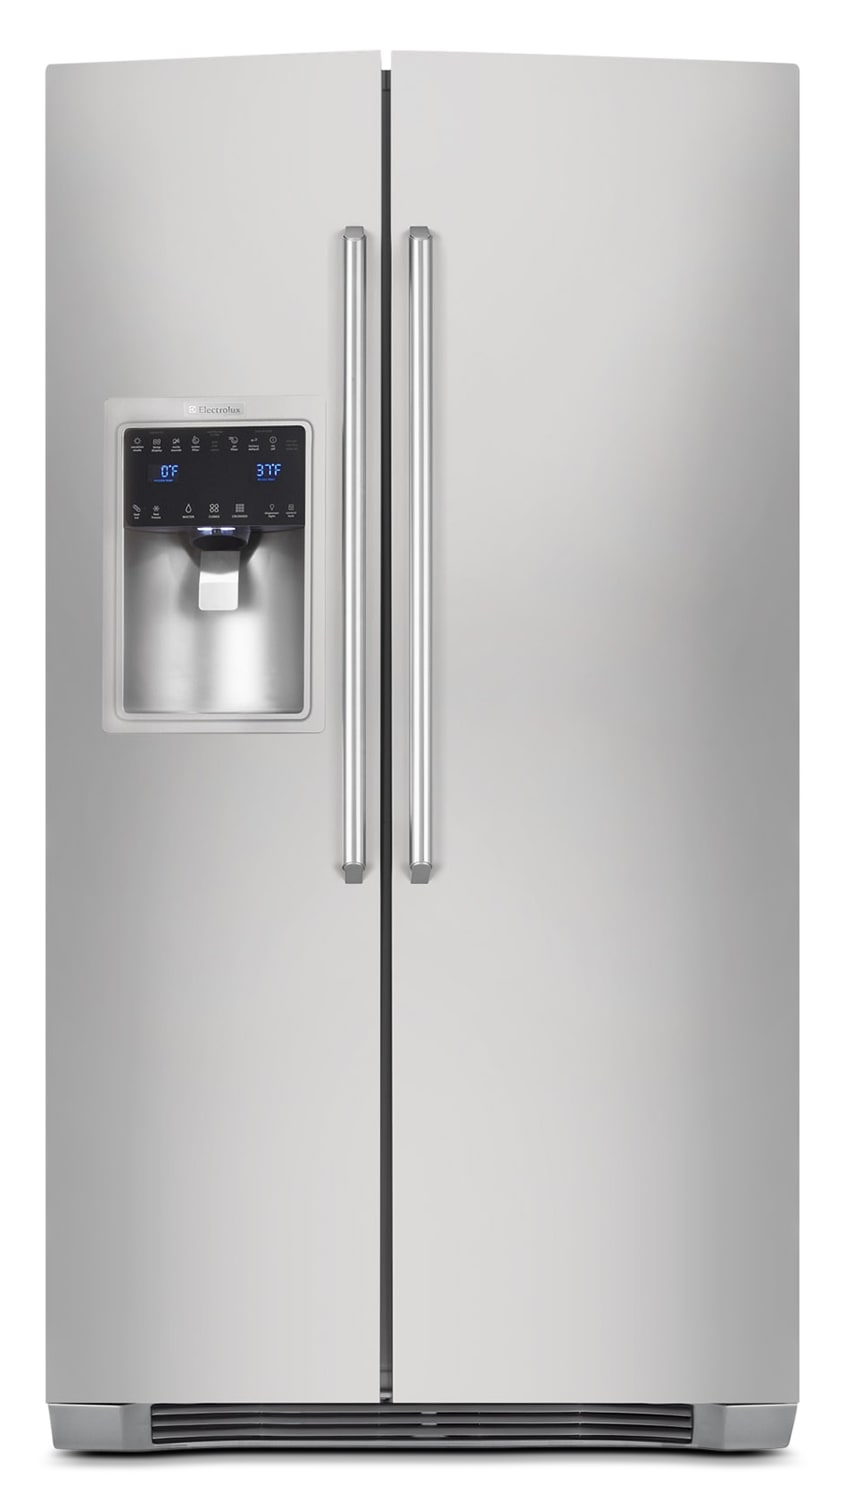 Electrolux Stainless Steel Counter-Depth Side-by-Side Refrigerator (22.67 Cu. Ft.) - EI23CS35KS